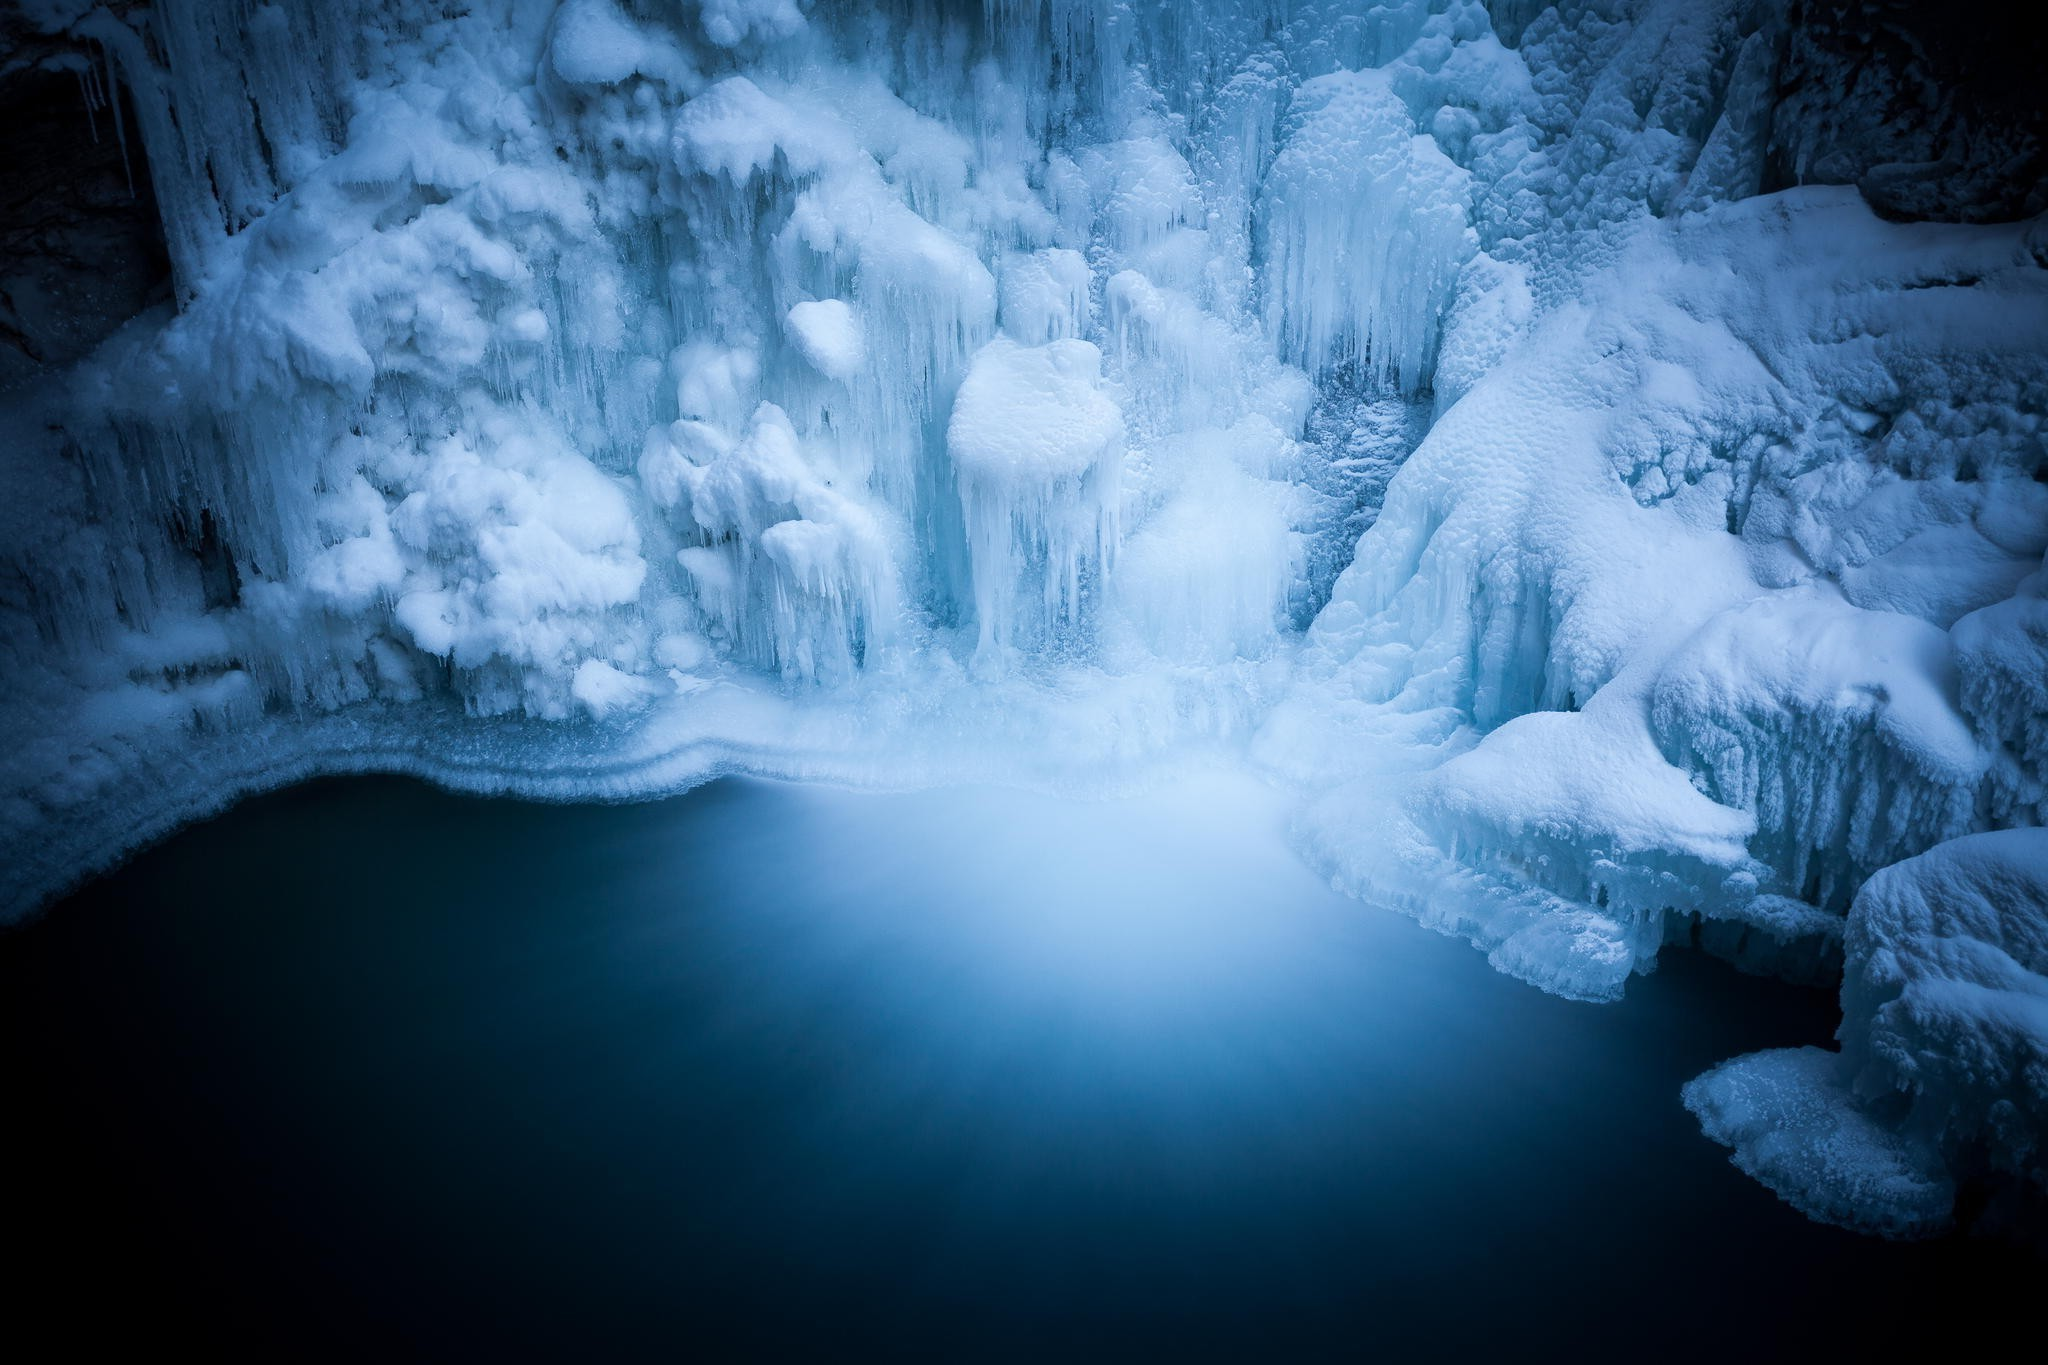 Nature Wallpaper Full Hd National Geographic Nature Winter Snow Ice Water Waterfall Long Exposure